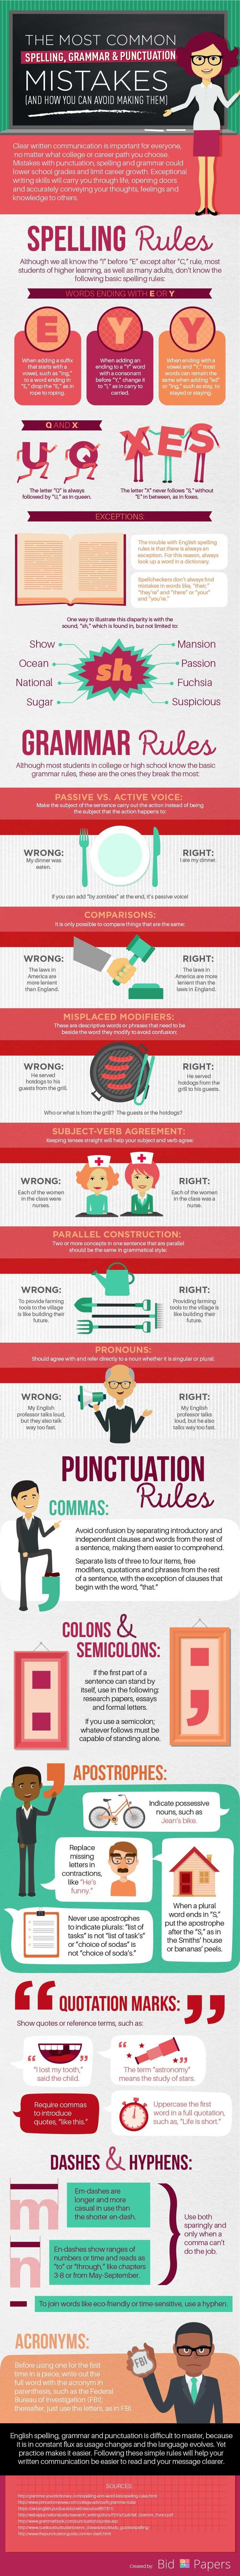 The Most Common Spelling, Grammar And Punctuation Mistakes #Infographic #Education